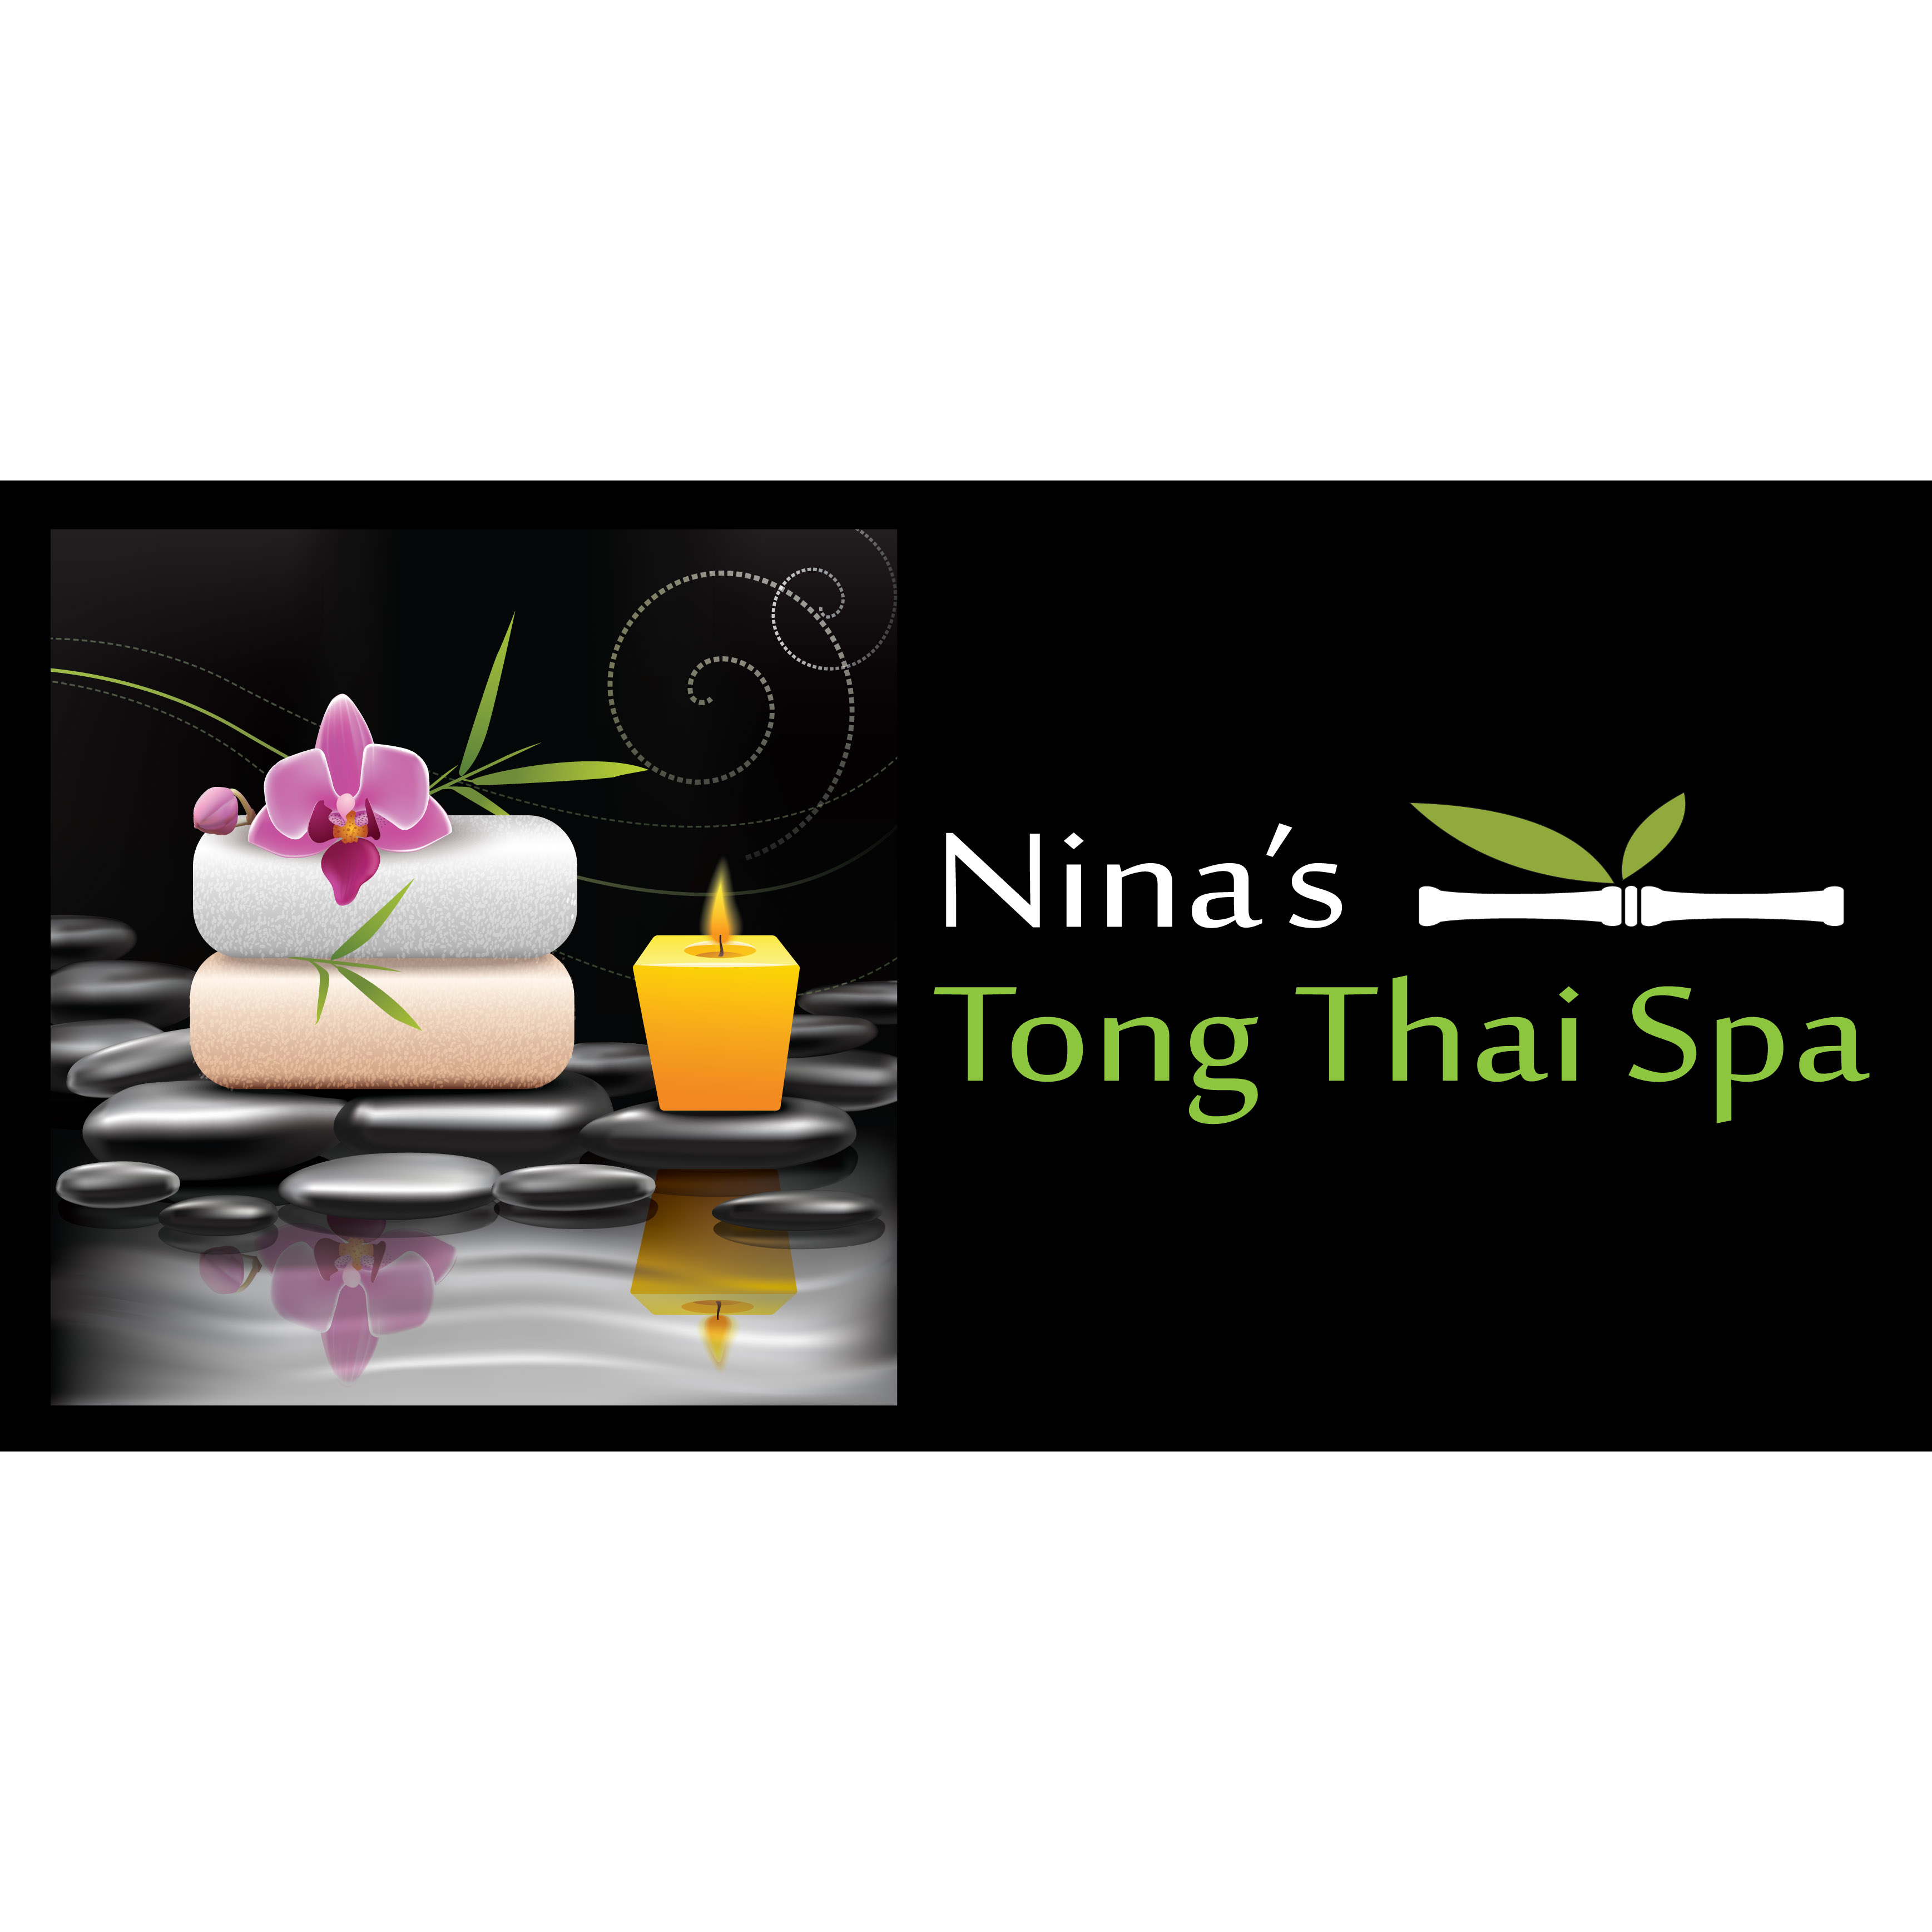 Nina's Tong Thai Spa - Encino, CA - Beauty Salons & Hair Care